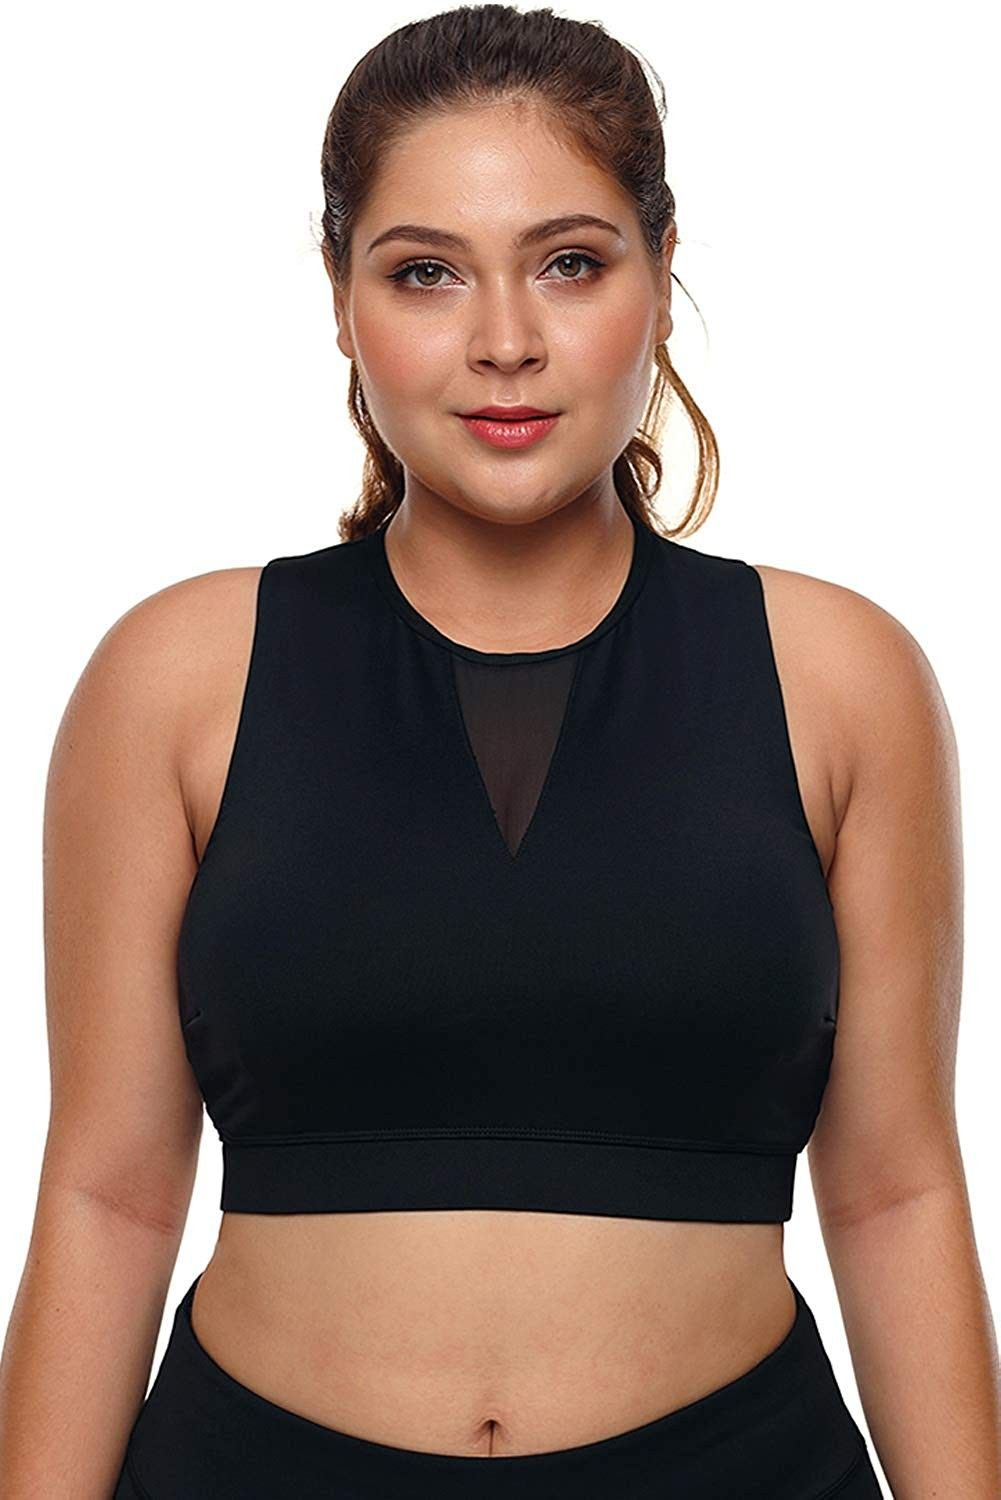 Pin on Women's Sports & Fitness Clothing Colletion